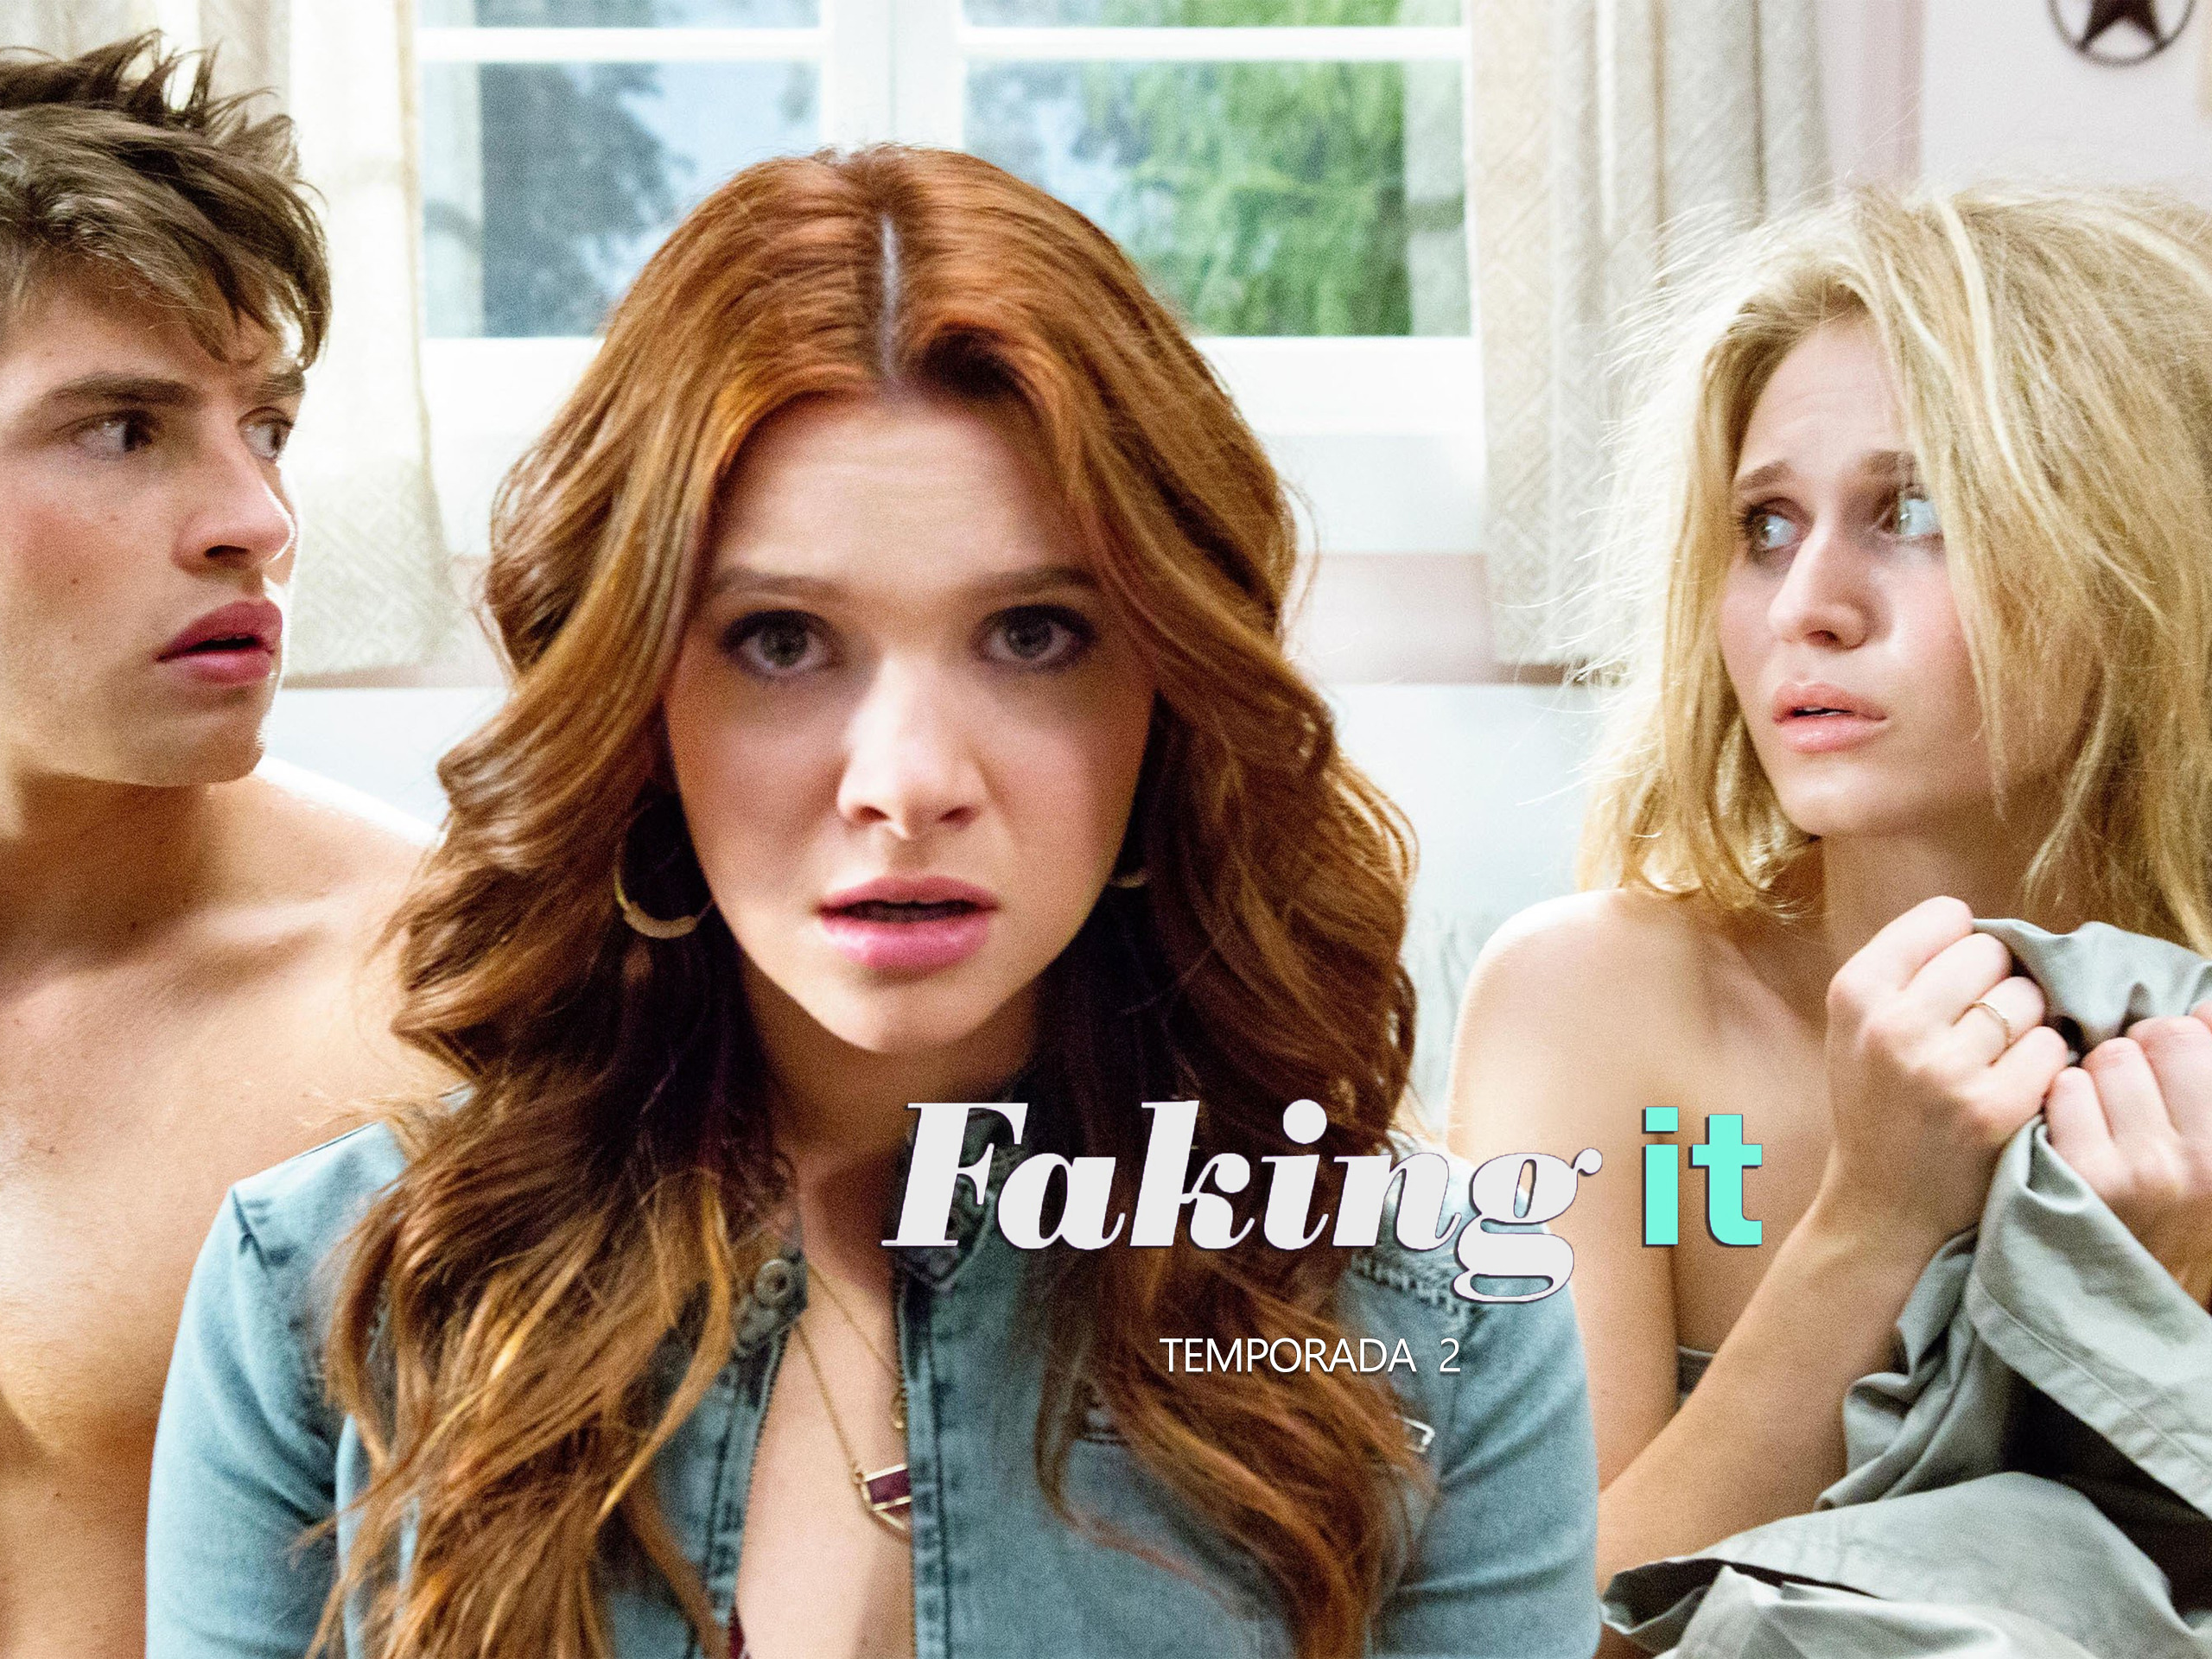 Fakeing